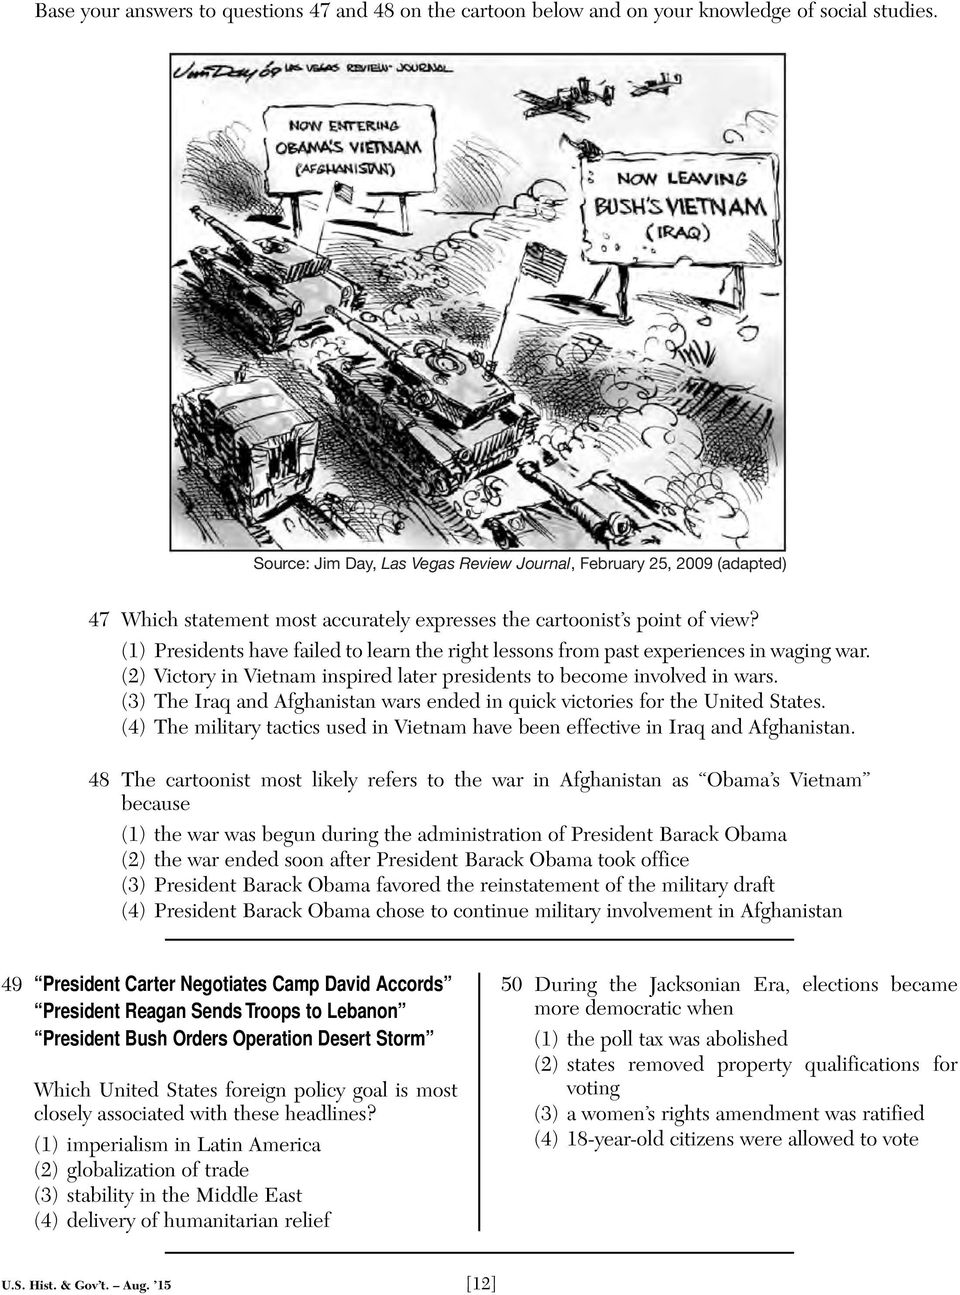 U.s. foreign policy in vietnam essay